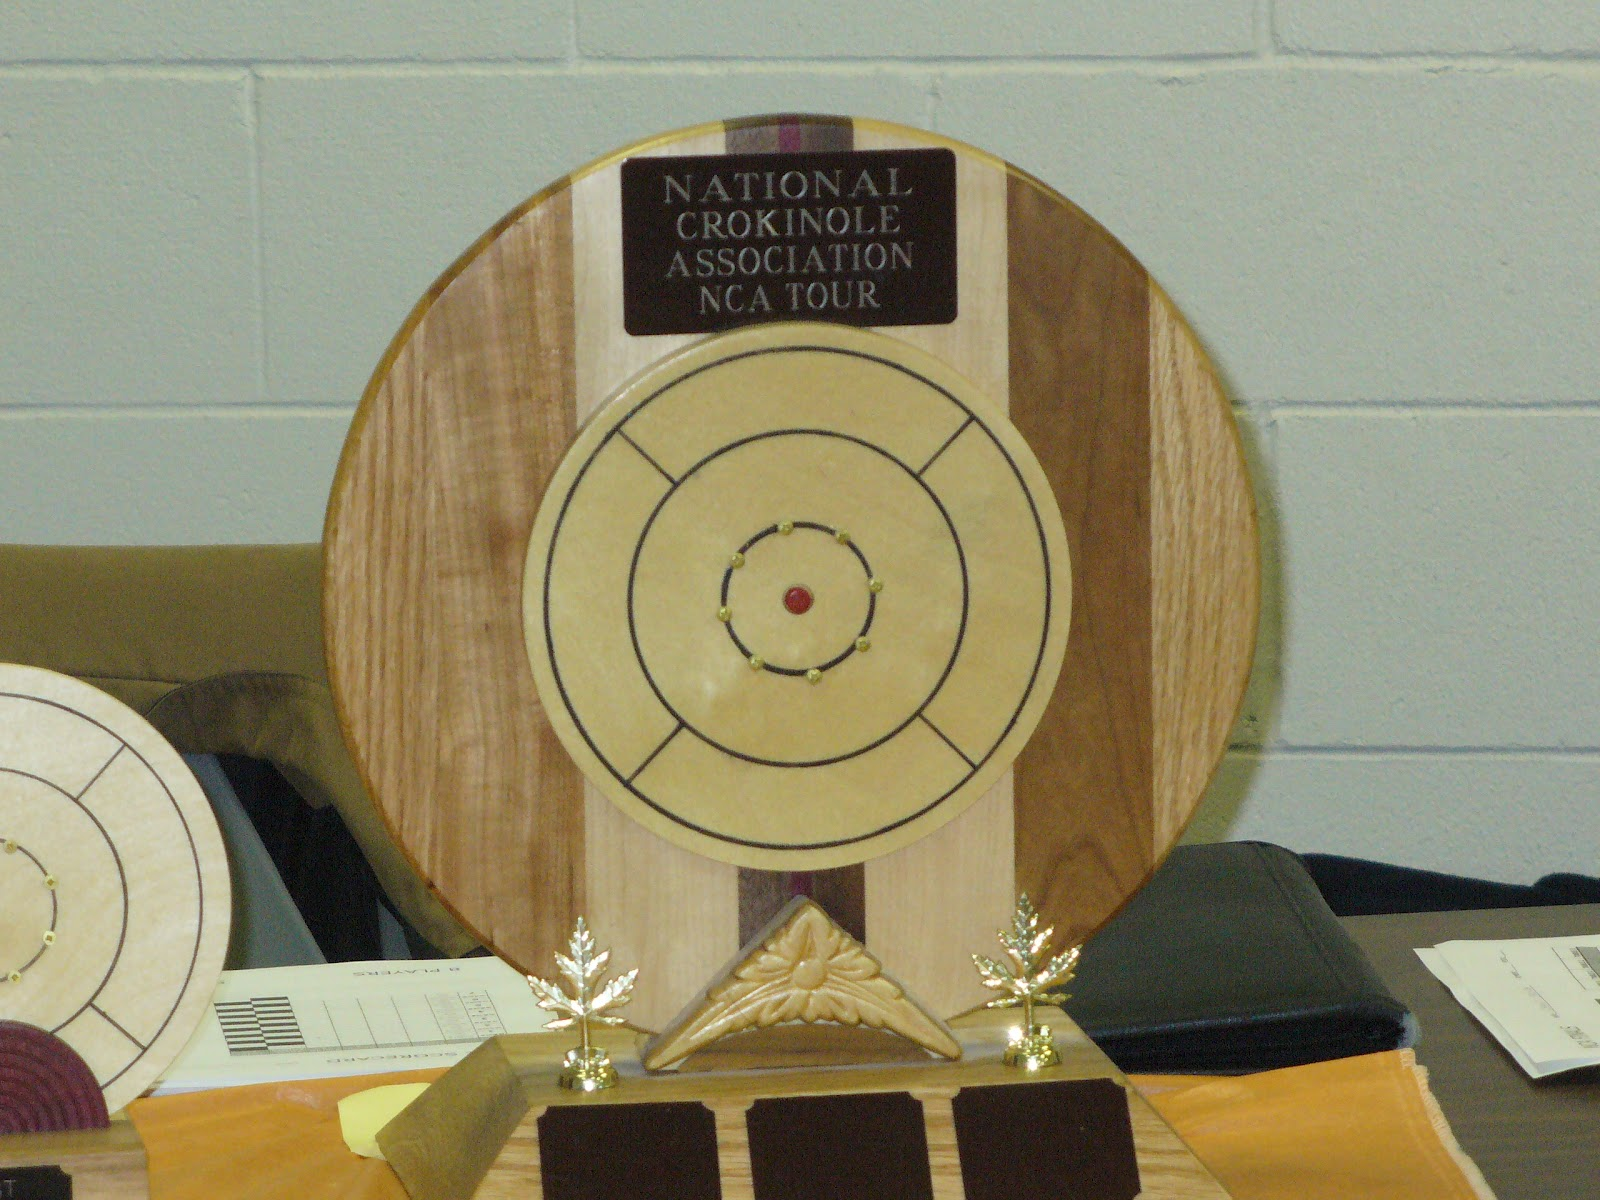 The Trophy awarded to the winner of the NCA Tour.